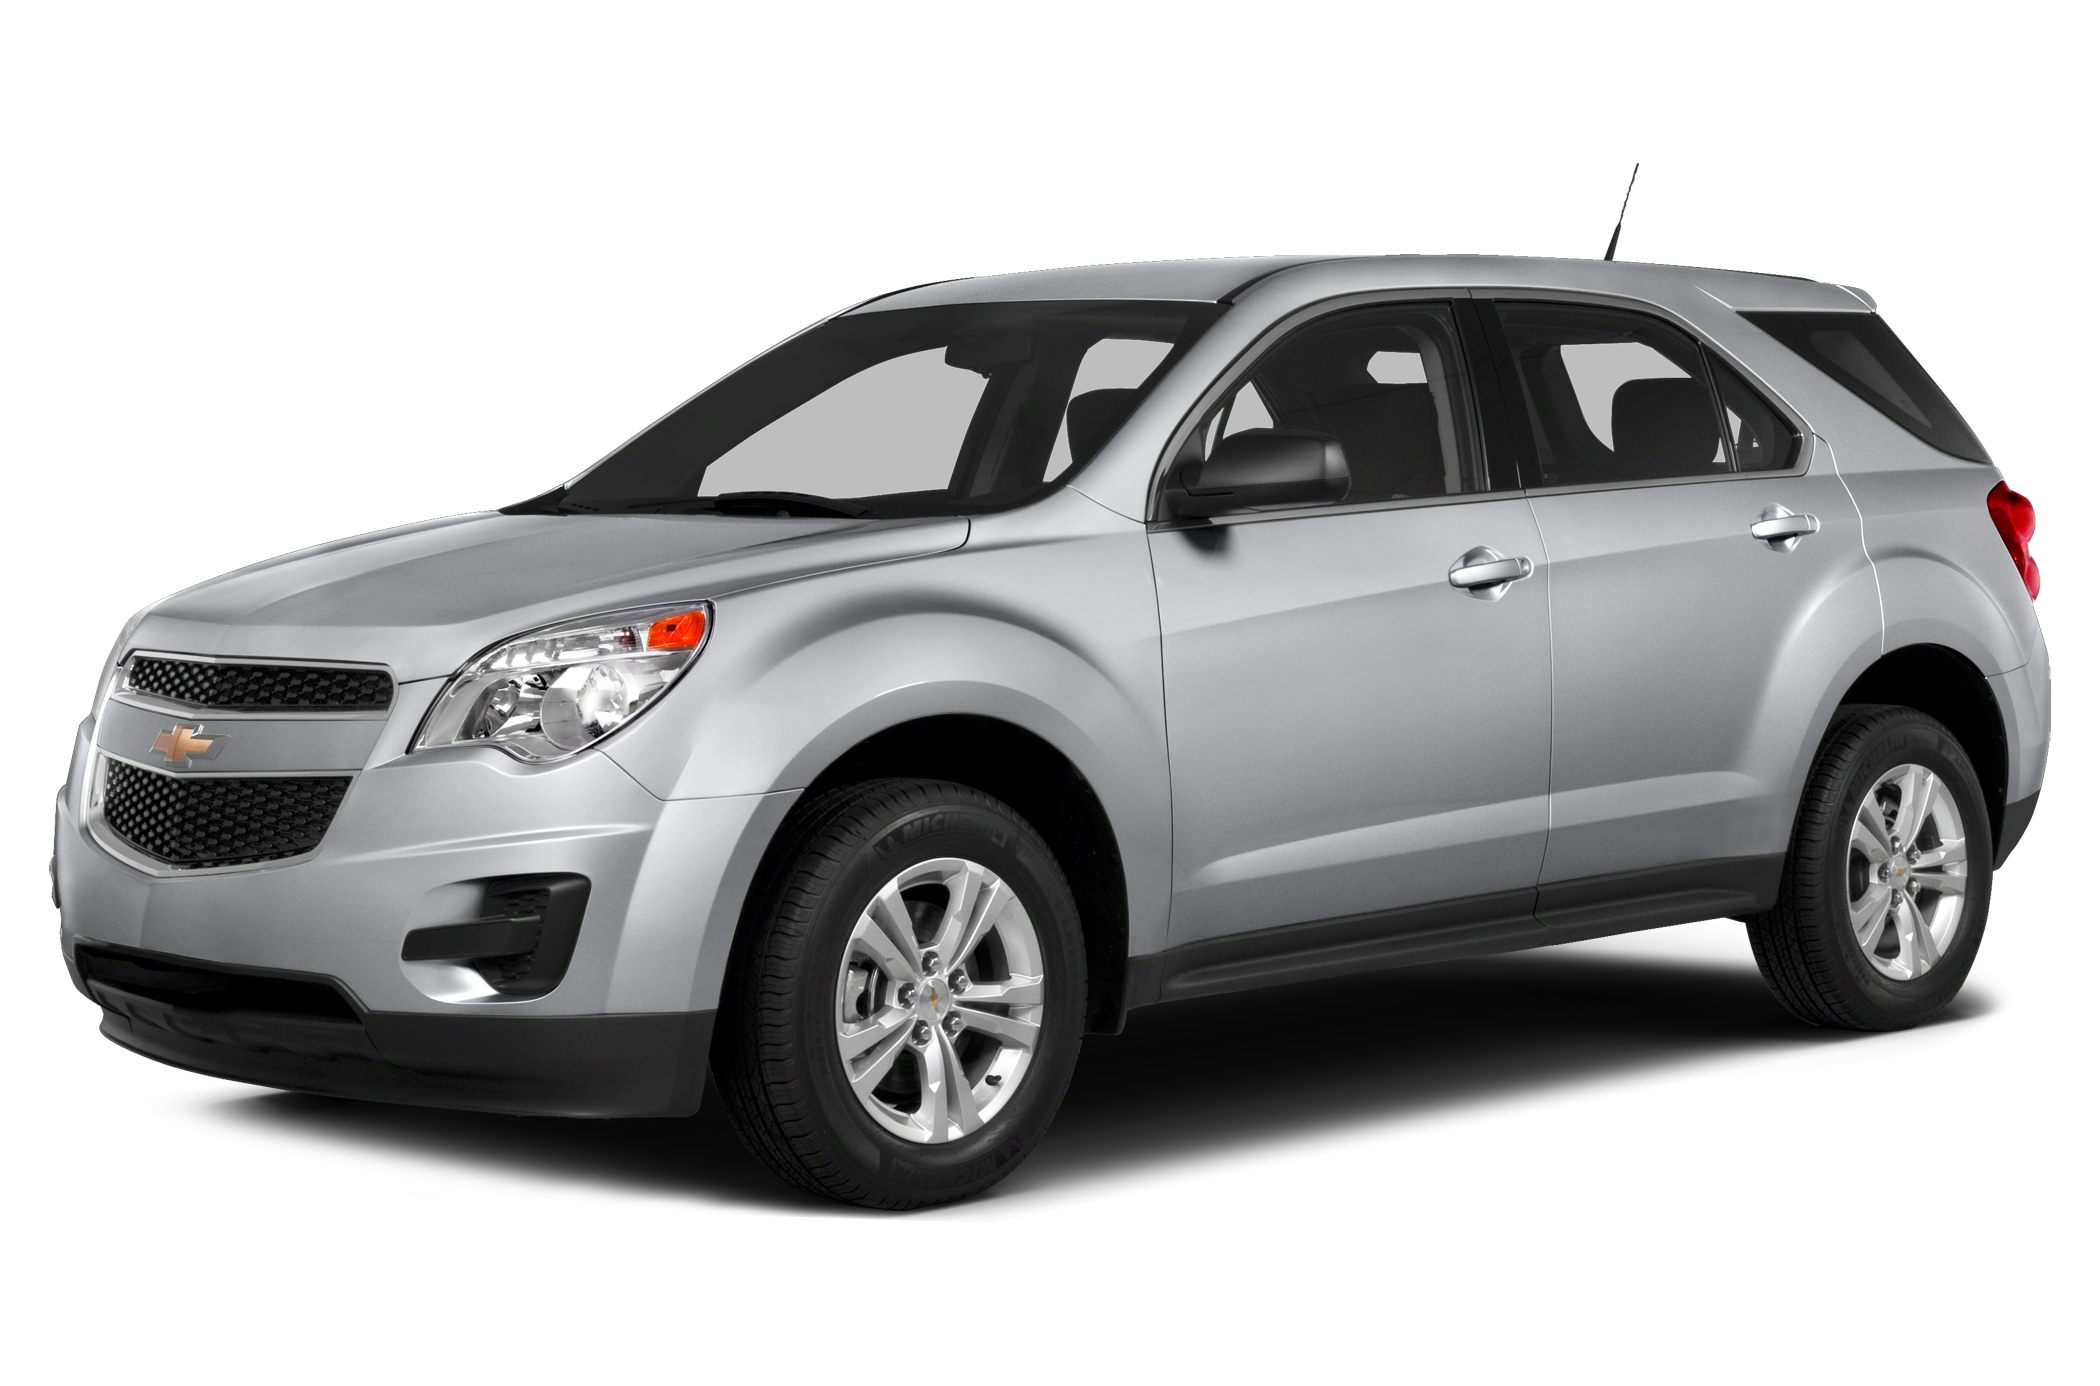 2015 Chevrolet Equinox LS SUV for sale in Columbus for $25,395 with 0 miles.